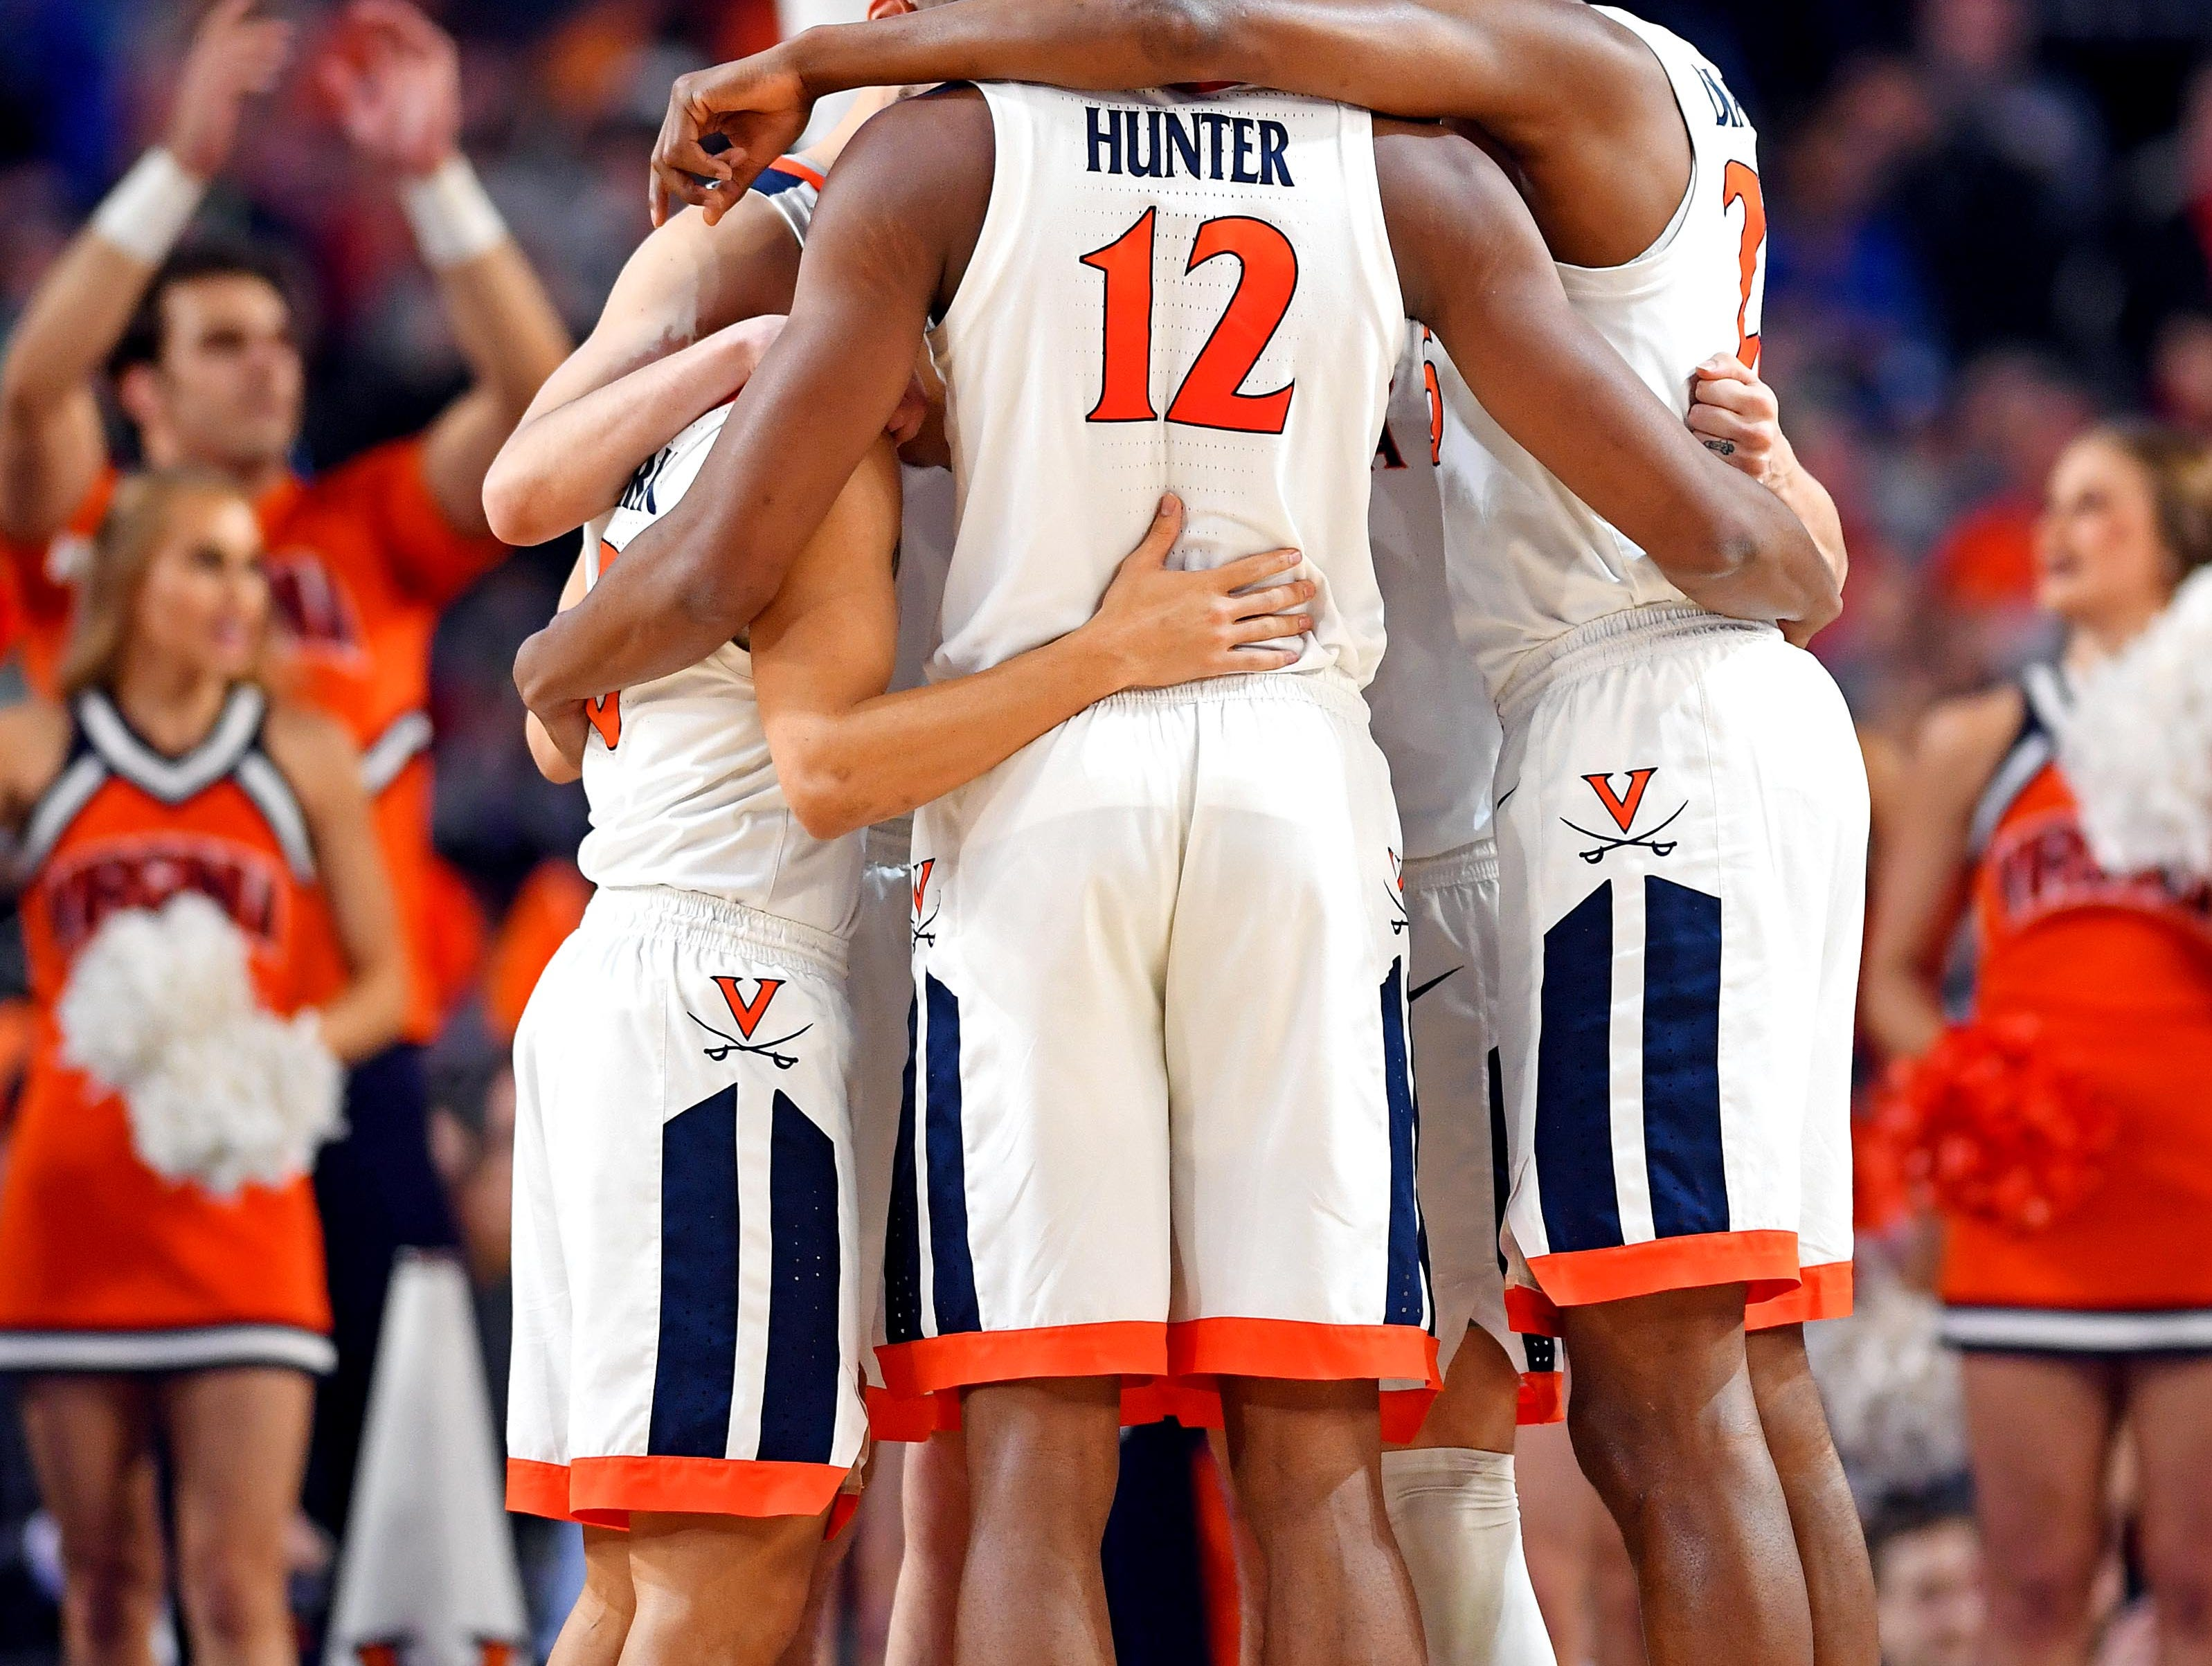 Apr 8, 2019; Minneapolis, MN, USA; The Virginia Cavaliers huddle before the game against the Texas Tech Red Raiders in the championship game of the 2019 men's Final Four at US Bank Stadium. Mandatory Credit: Bob Donnan-USA TODAY Sports